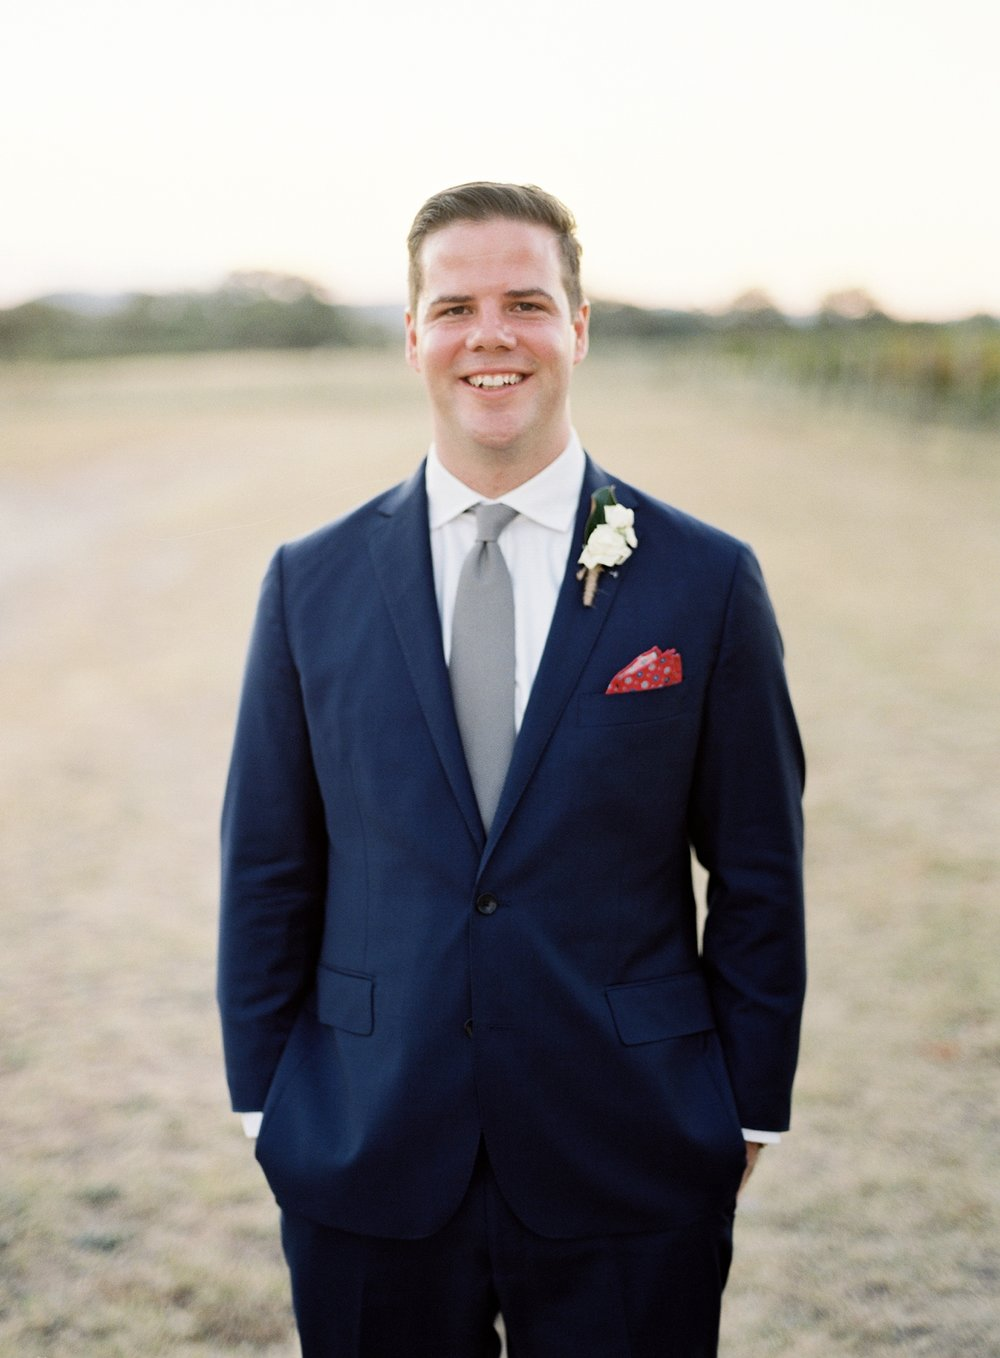 The Vine Grove Mudgee Wedding, Photography by Mr Edwards_1813.jpg